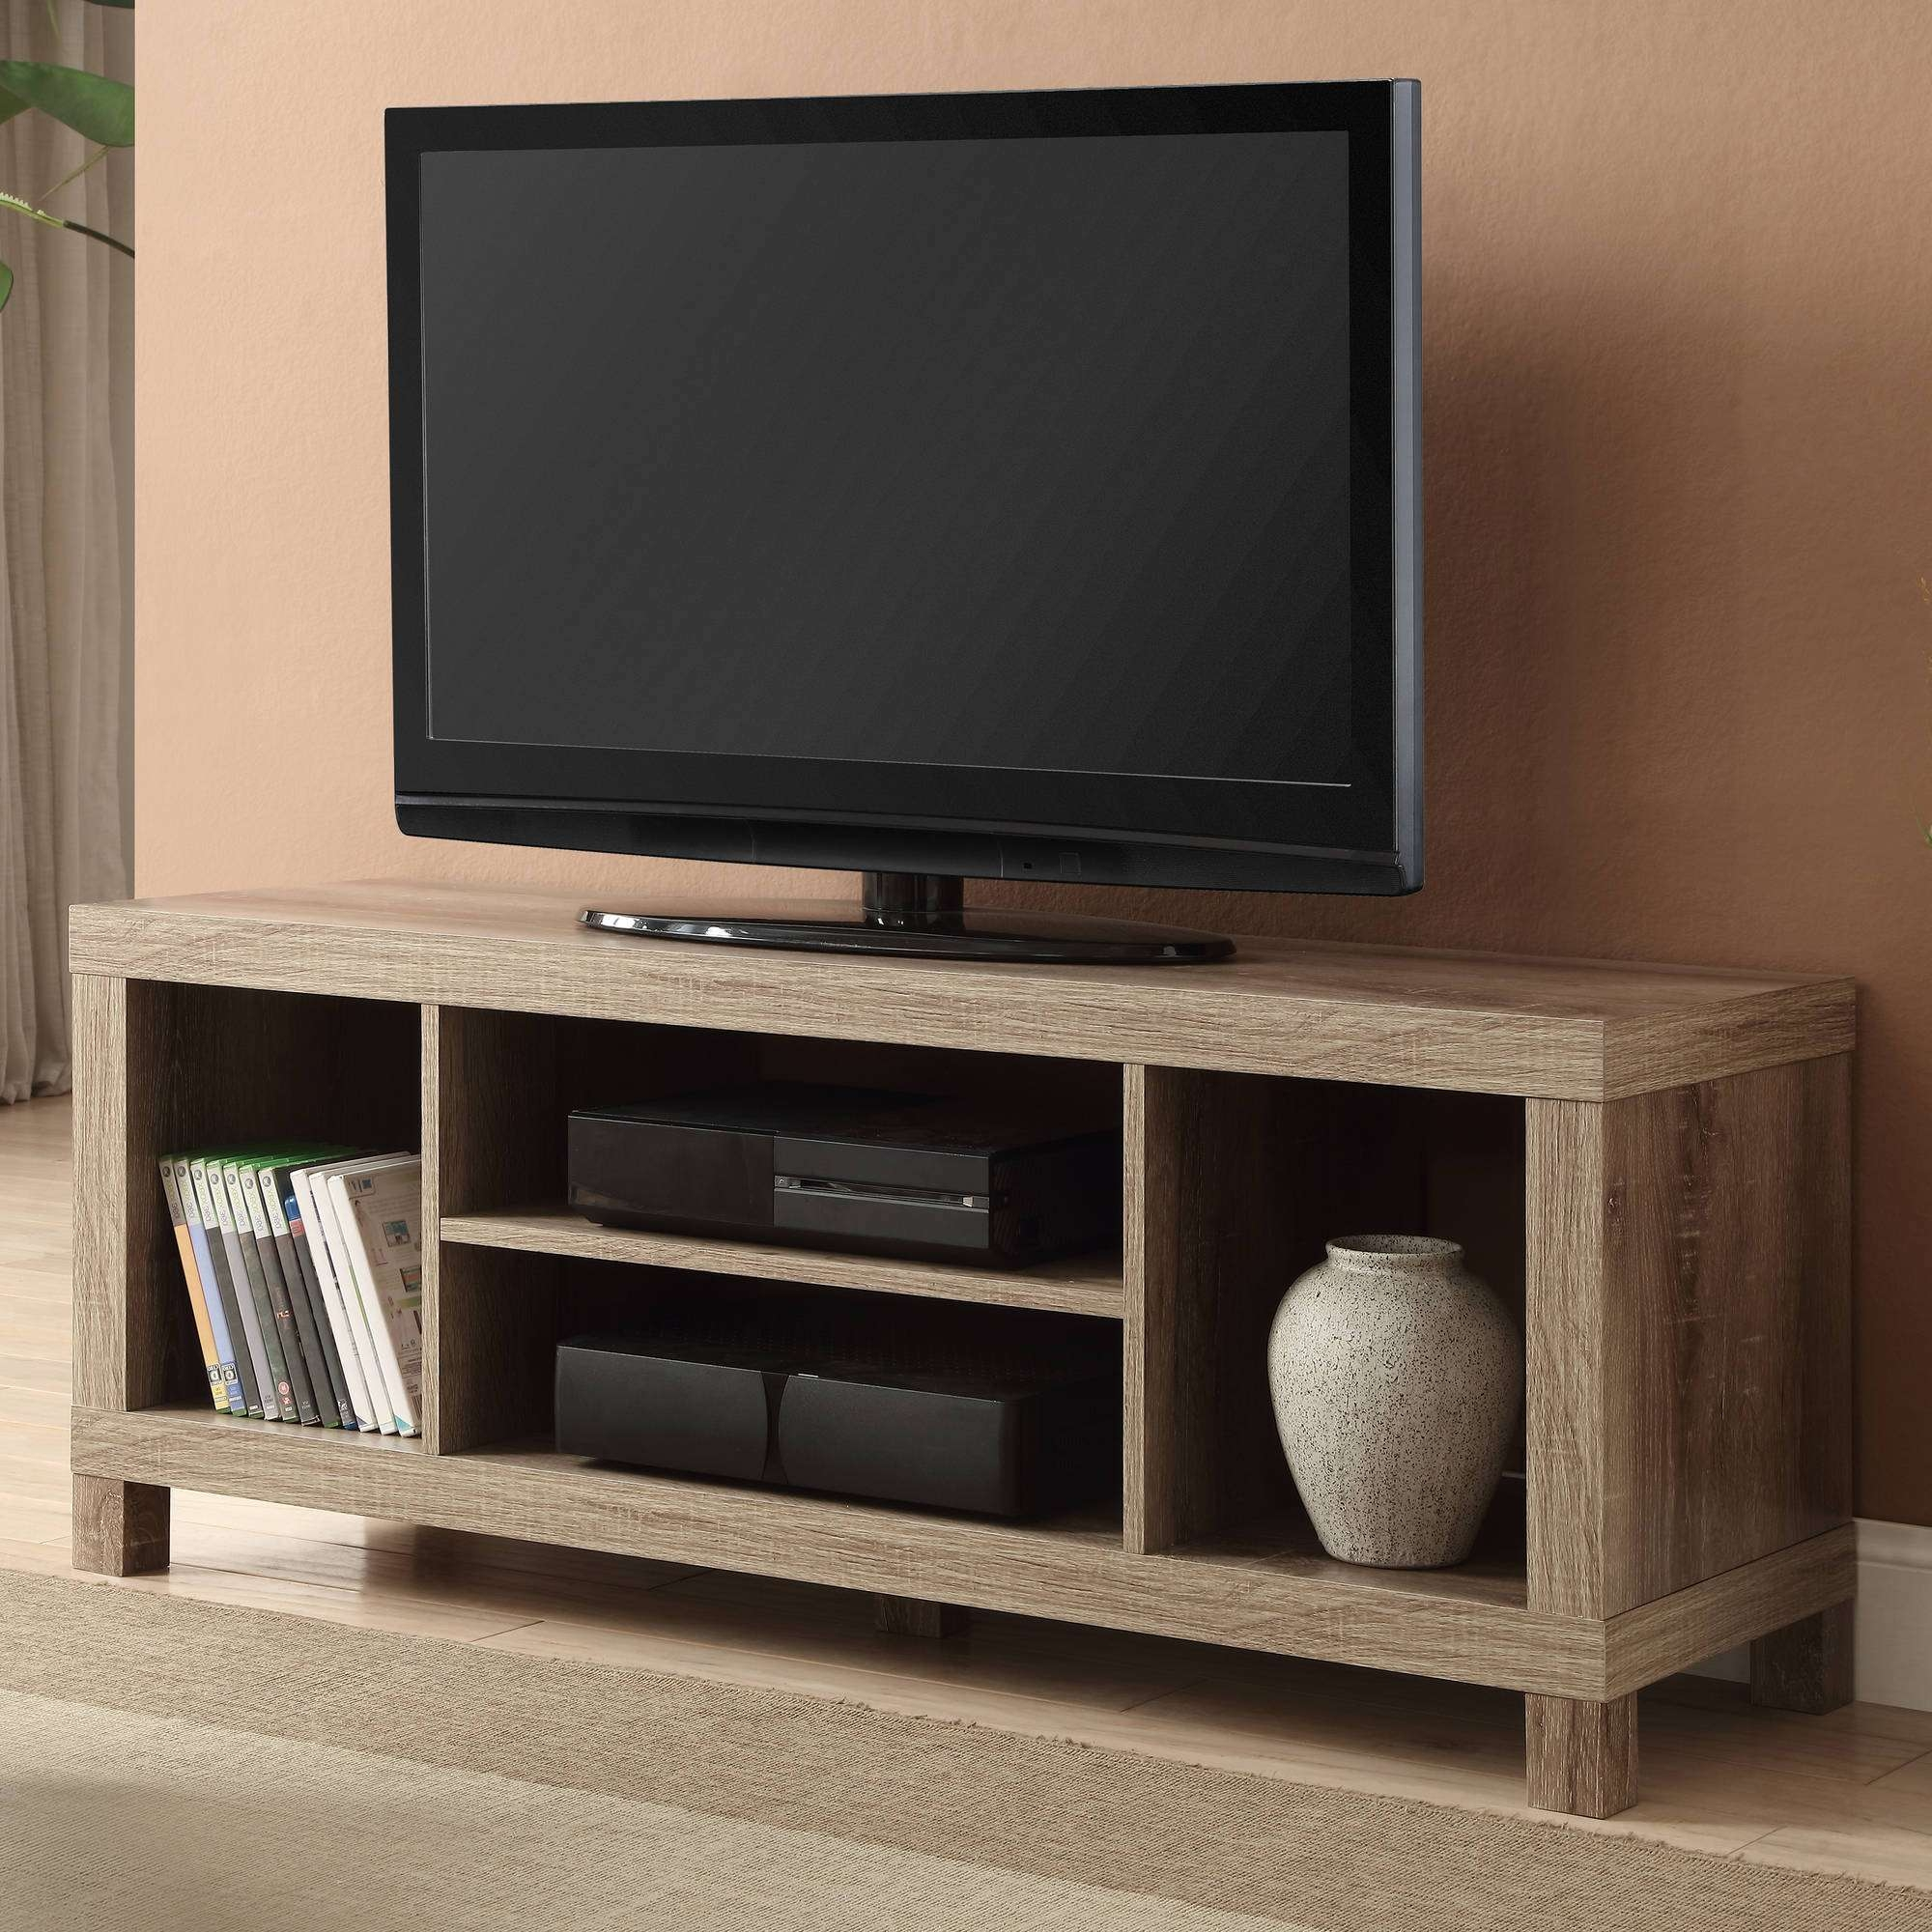 "Black Oak Tv Stand For Tvs Up To 42"" – Walmart Pertaining To Tv Stands For Small Rooms (View 7 of 15)"